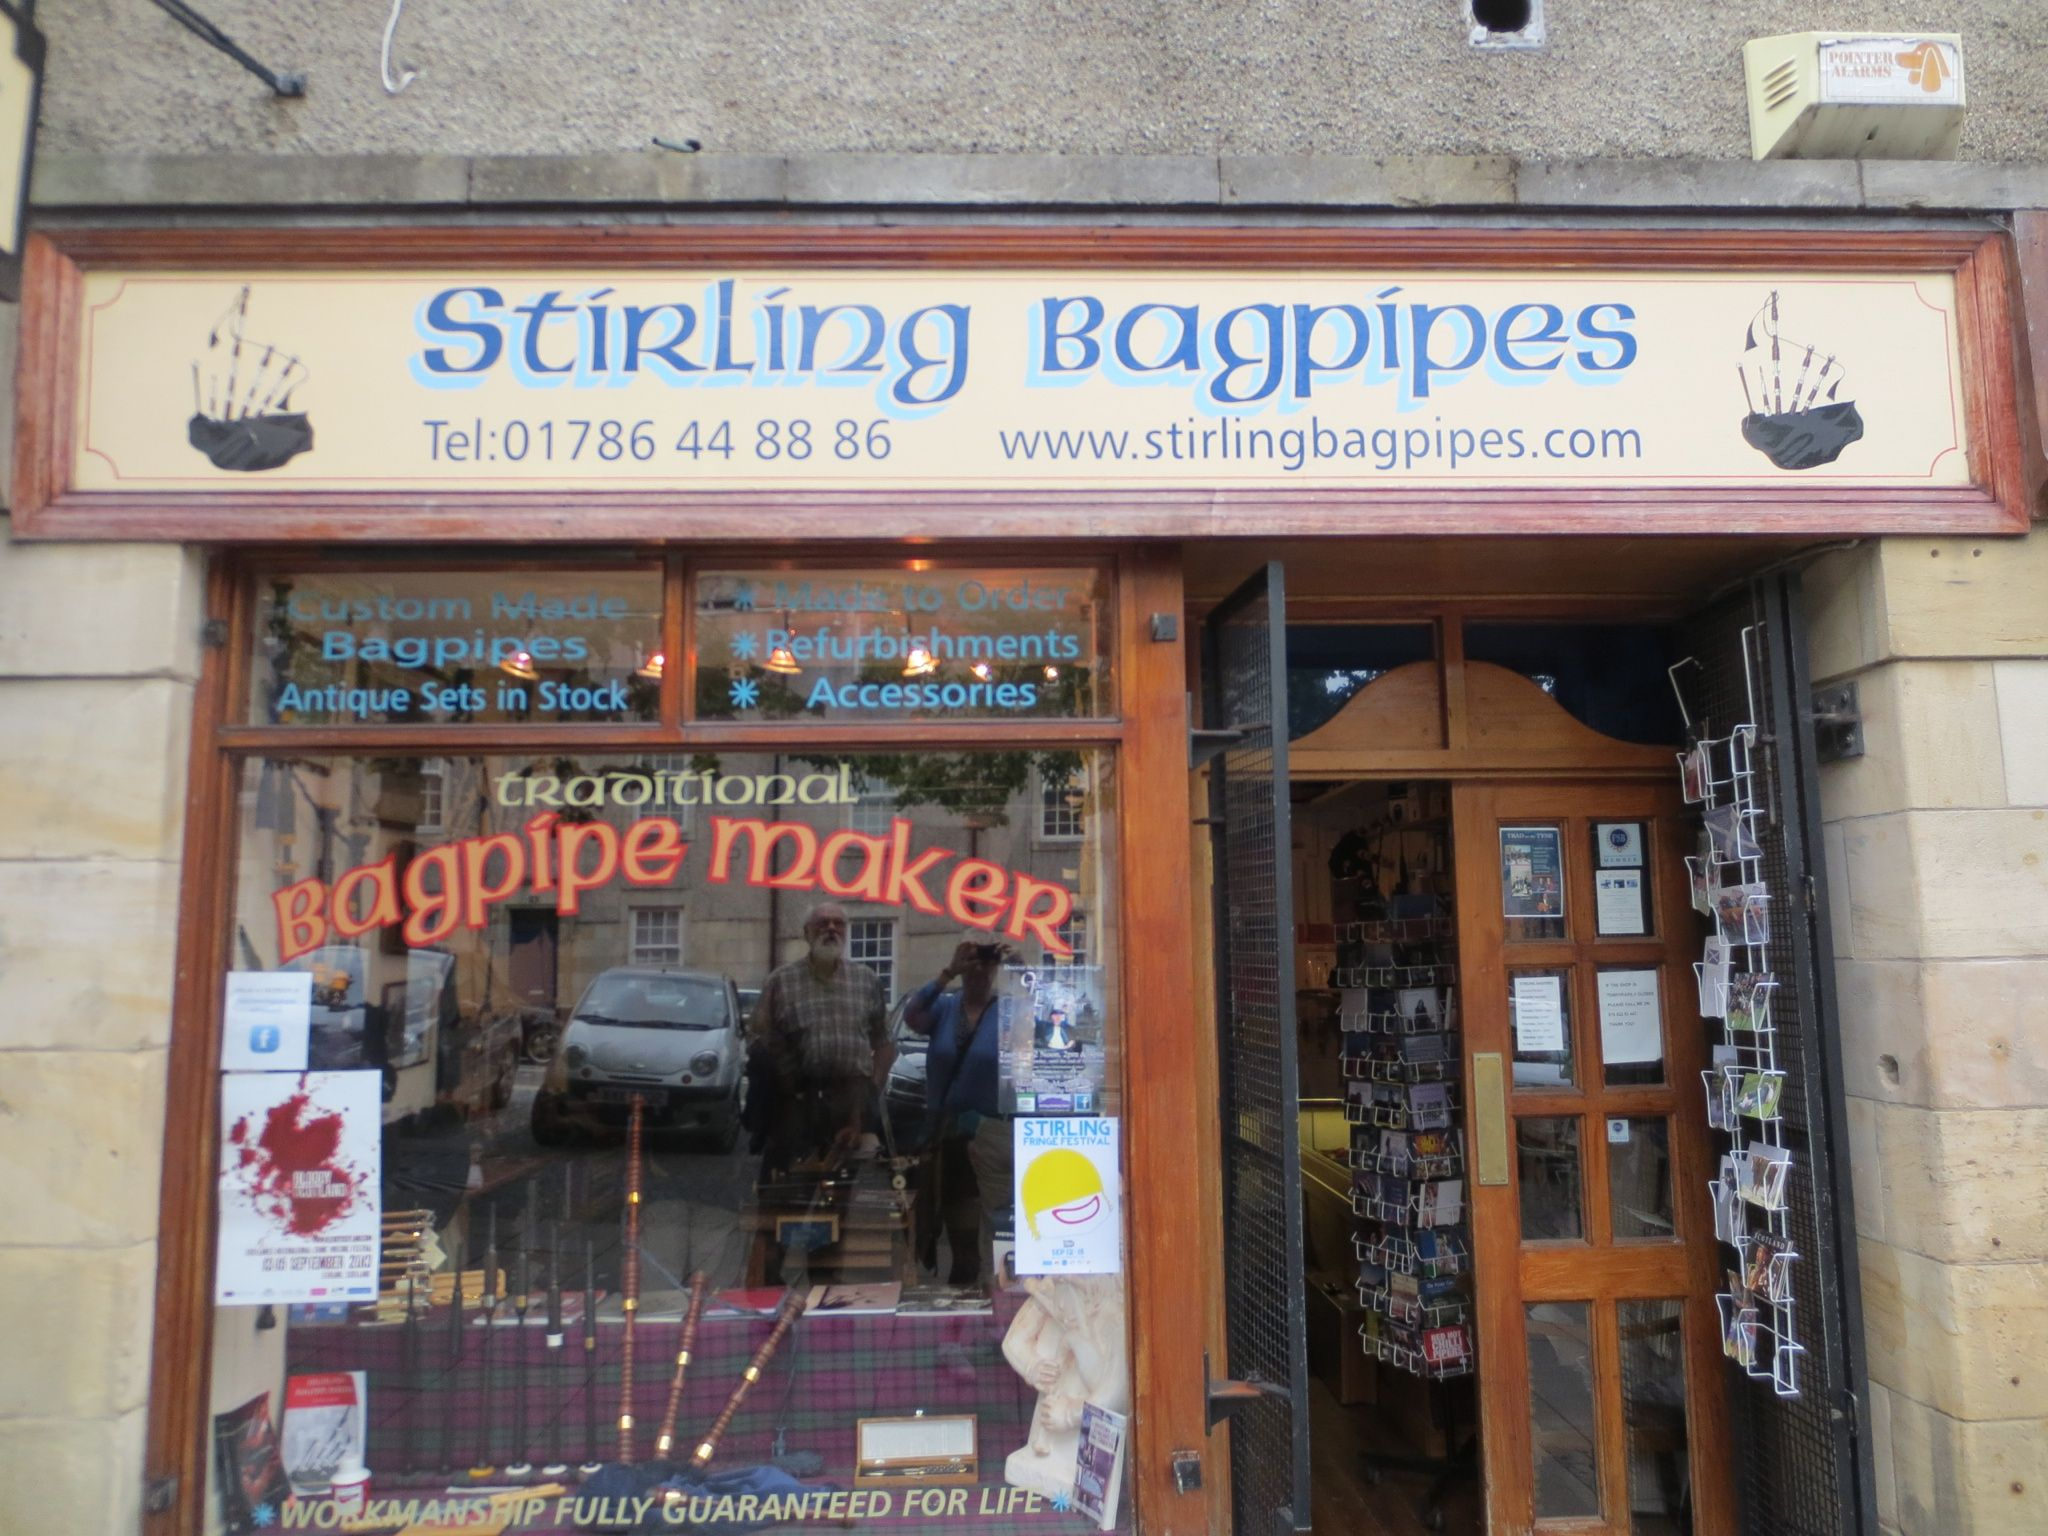 Bagpipe shop, Stirling Scotland